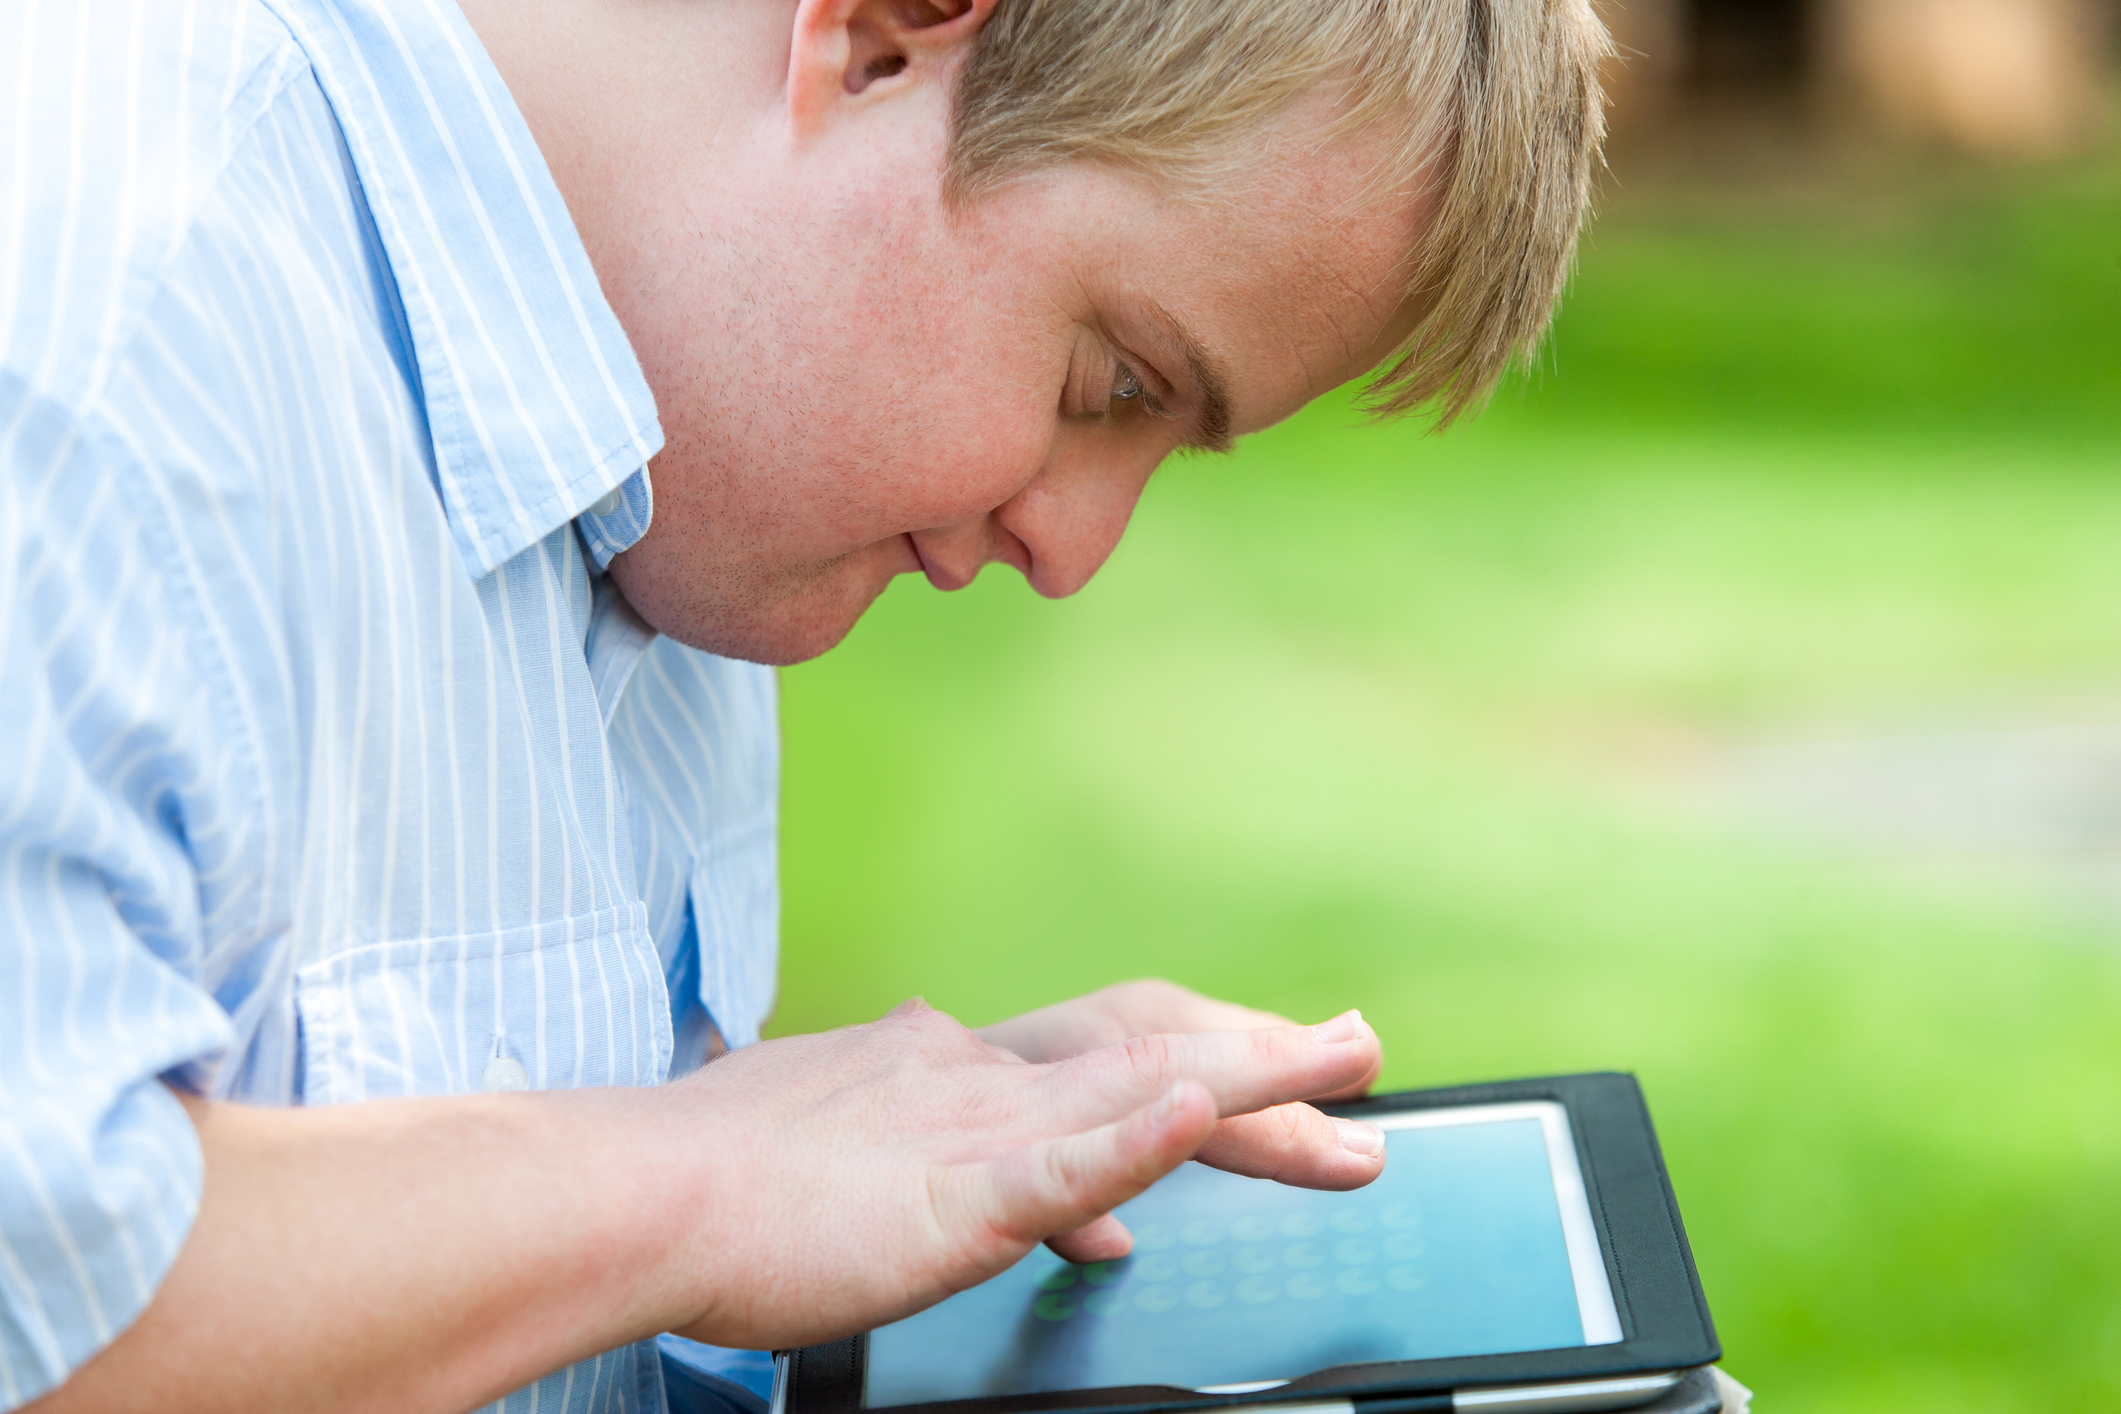 9 types of tech people with disabilities need